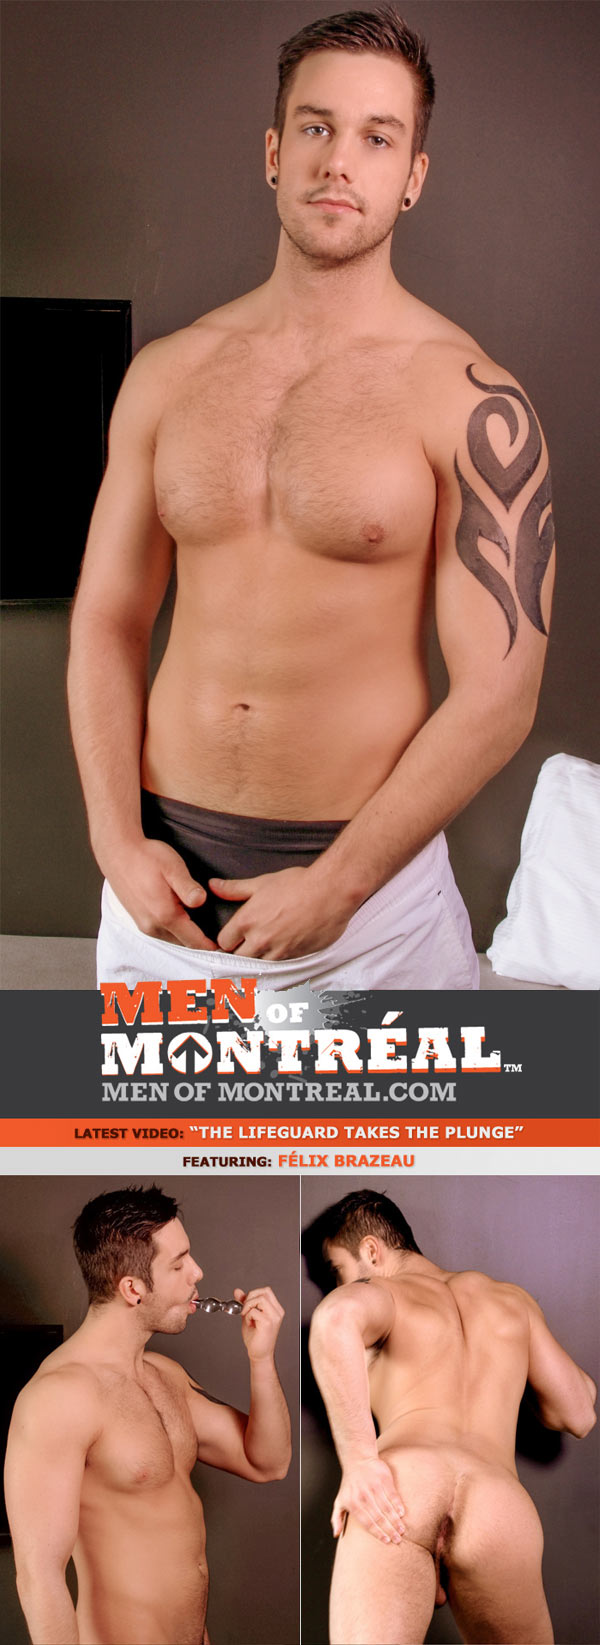 The Lifeguard Takes The Plunge (Félix Brazeau) at MenOfMontreal